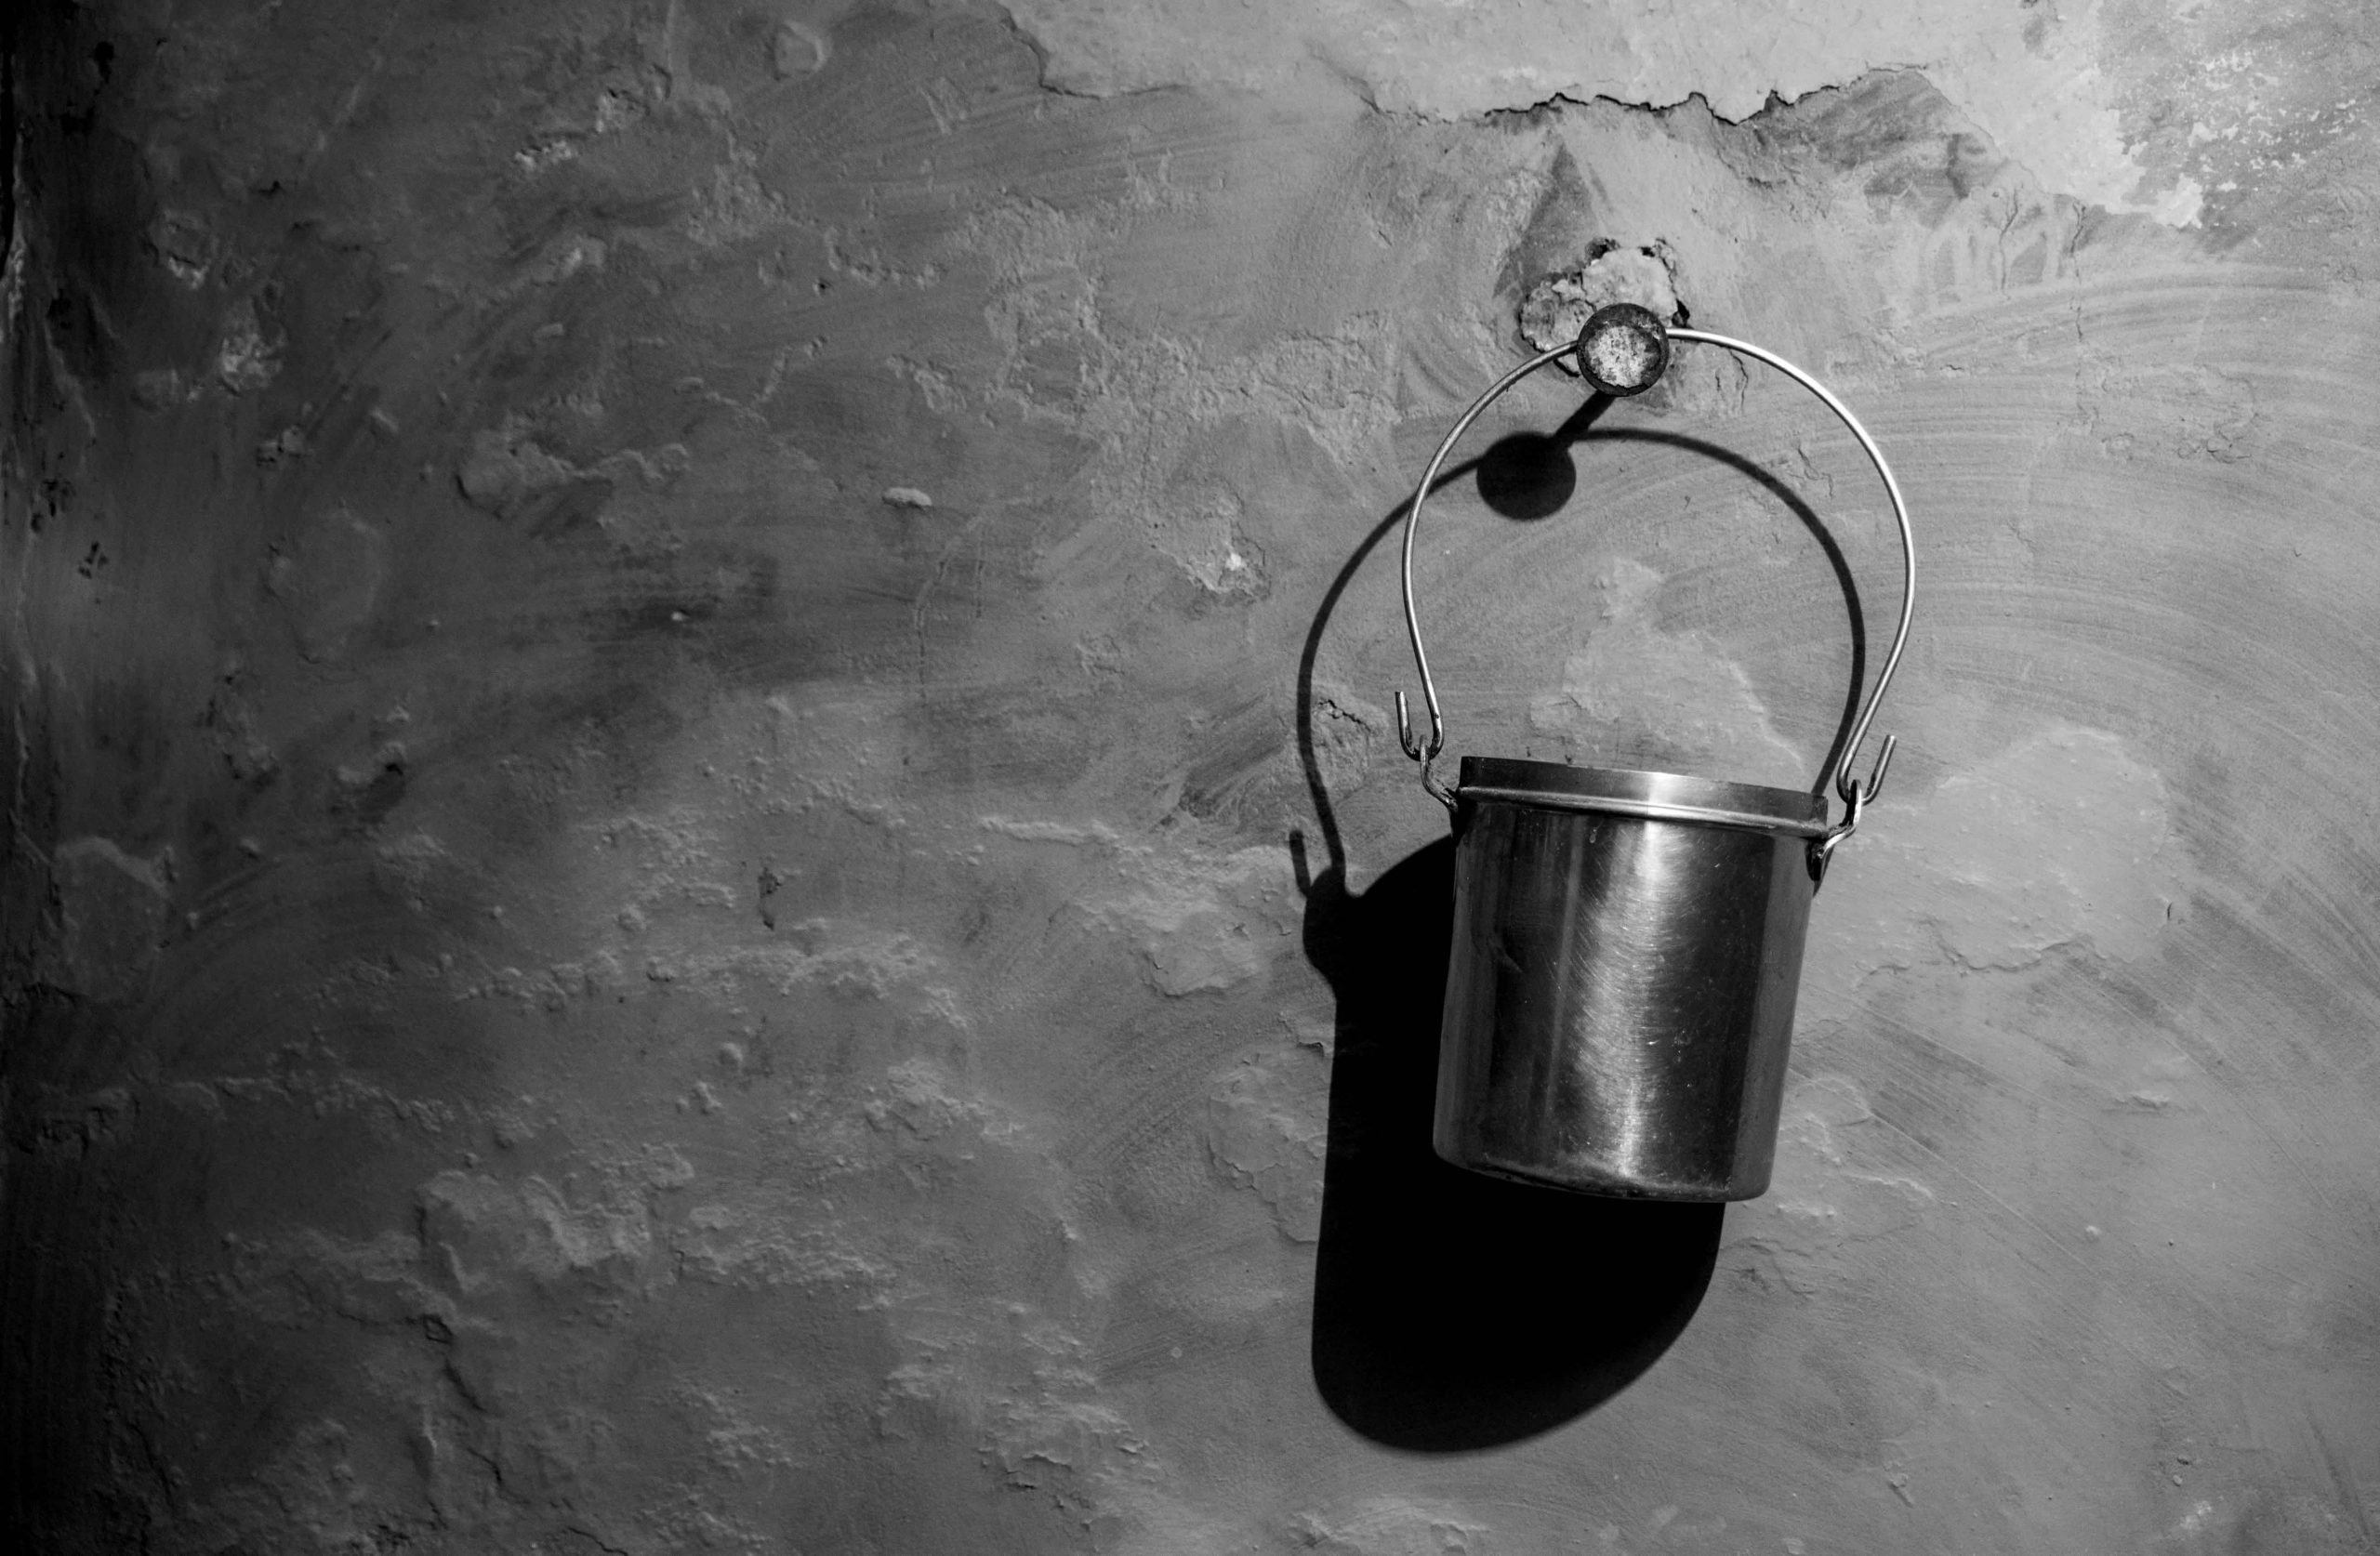 small bucket hanging on wall